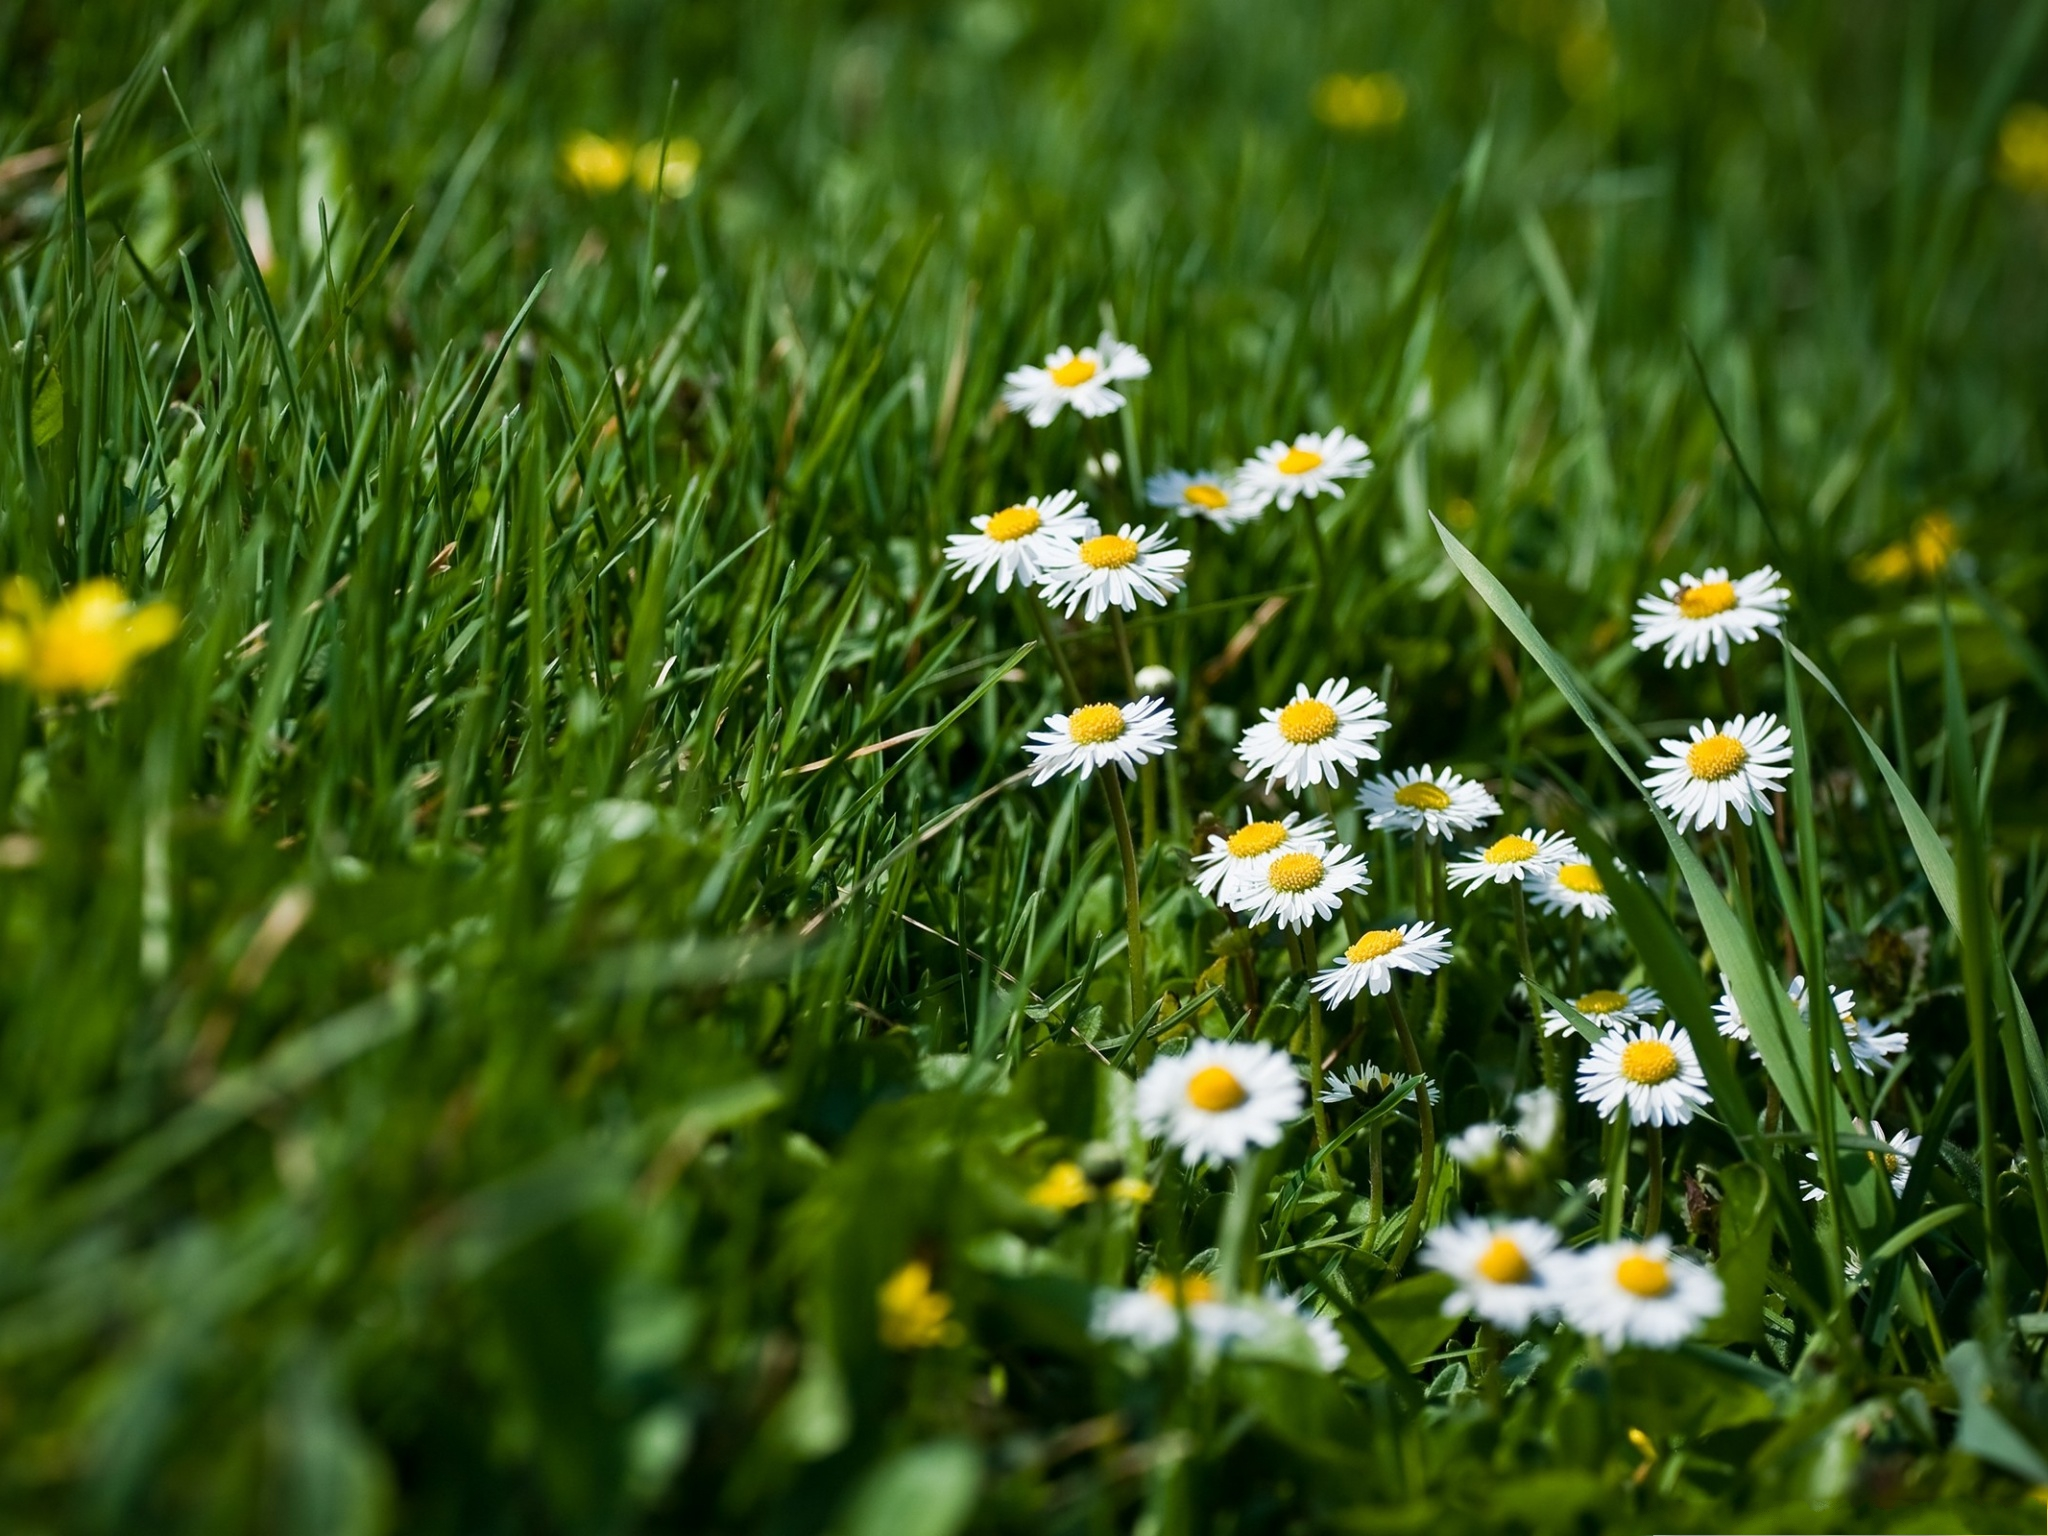 click to free download the wallpaper--Grass And Flowers, White Blooming Flowers Among Green Grass, Amazing Scene 2048X1536 free wallpaper download